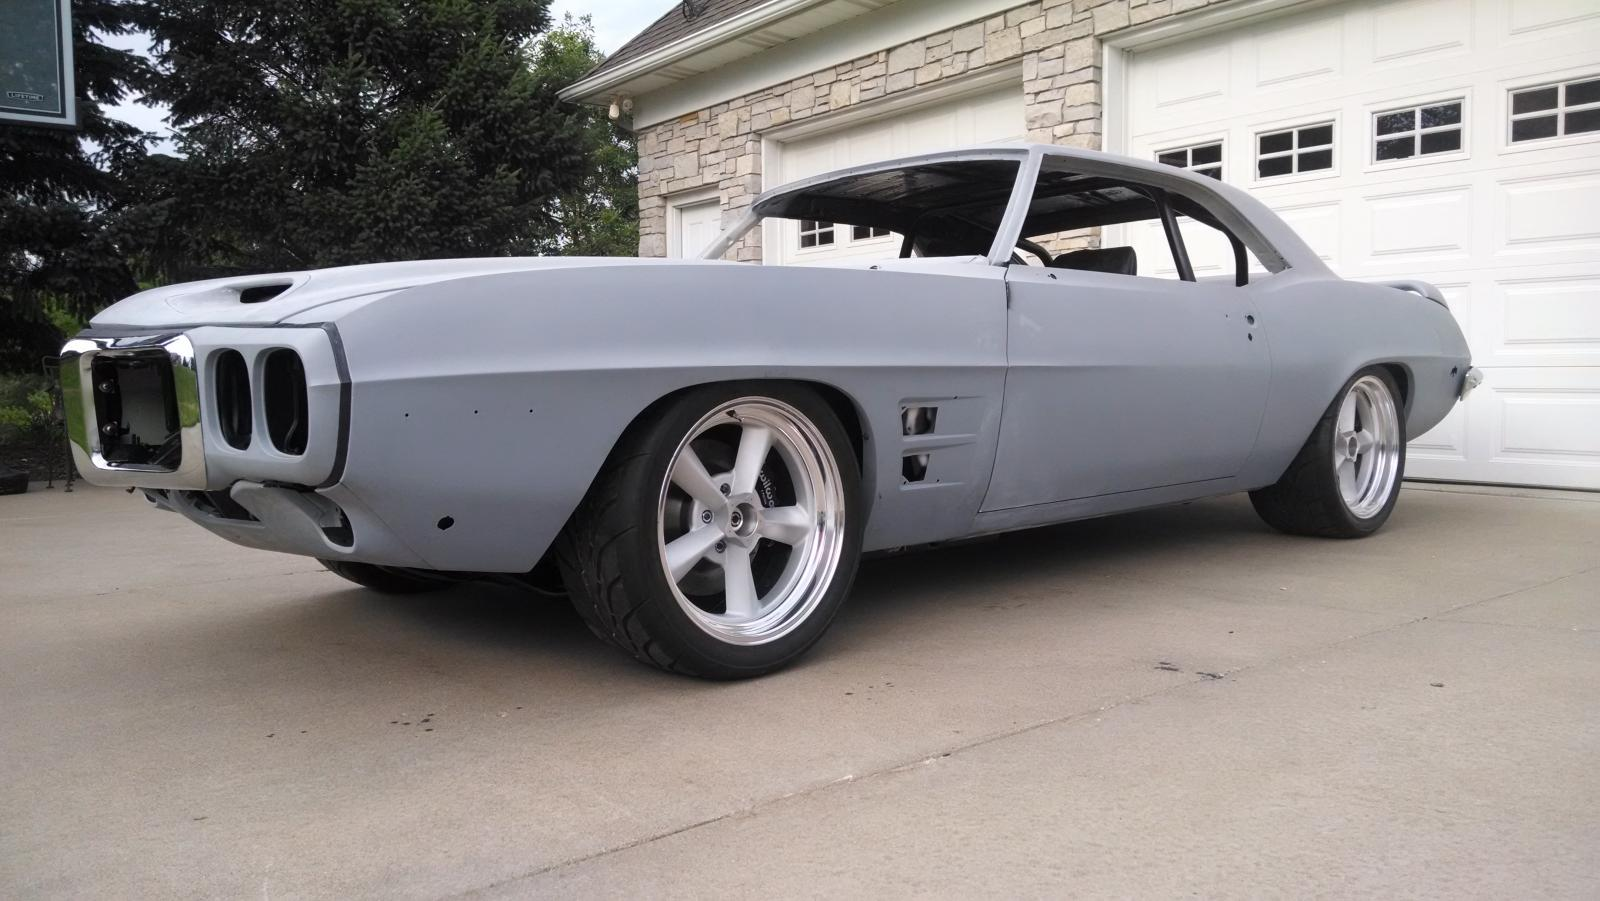 What size rims can I put on my Firebird ?